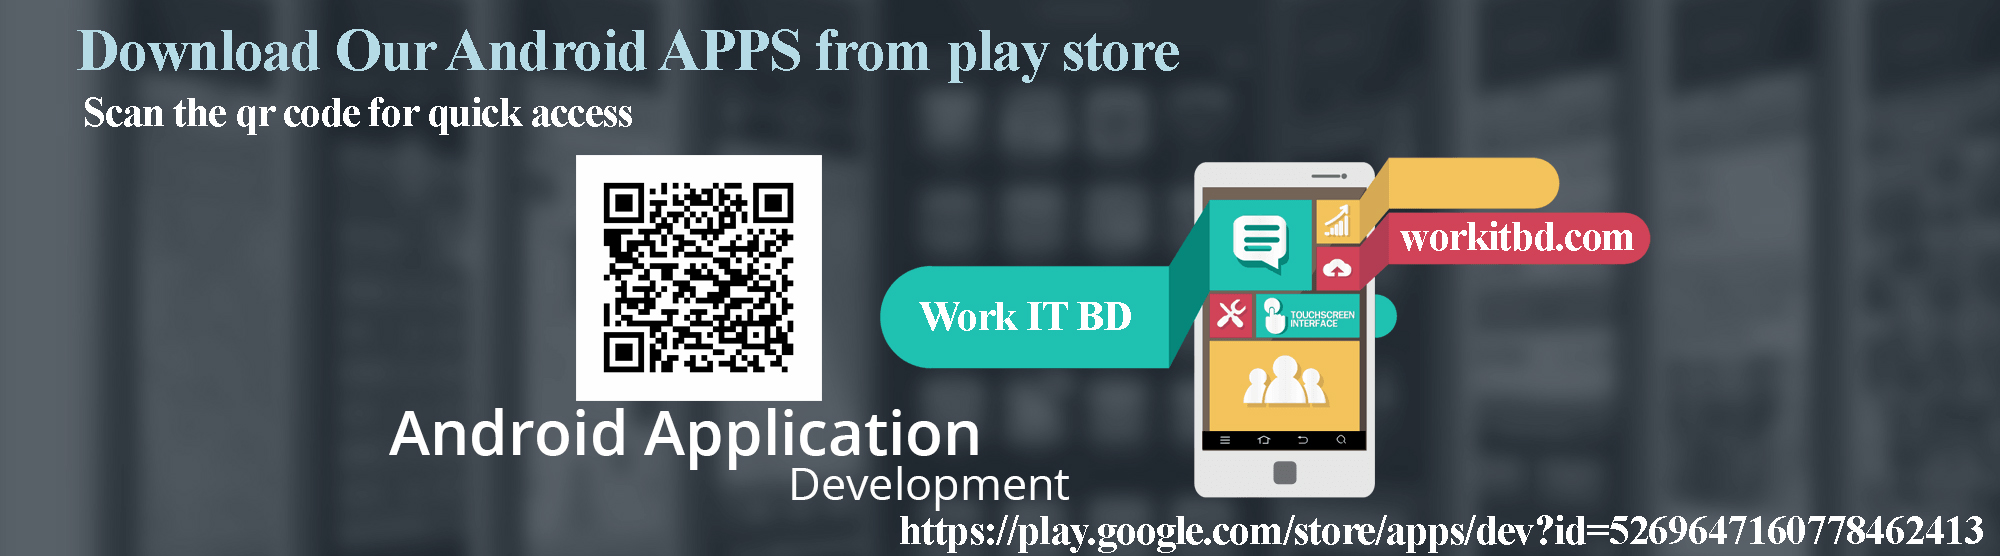 Work IT BD Google Play Store App